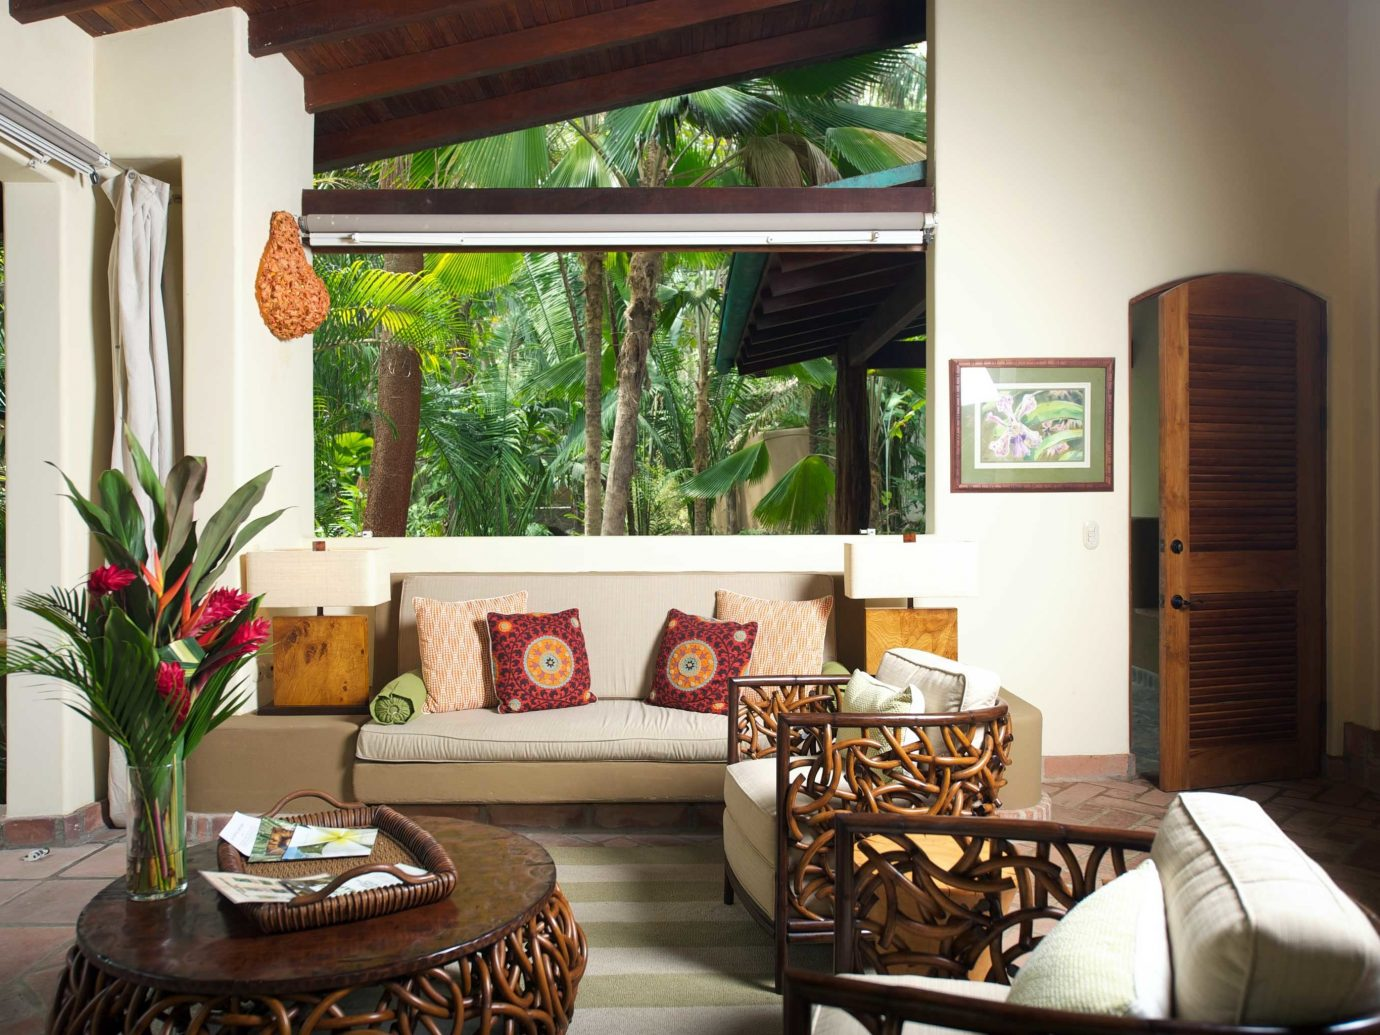 Living Room At Florblanca Hotel In Costa Rica